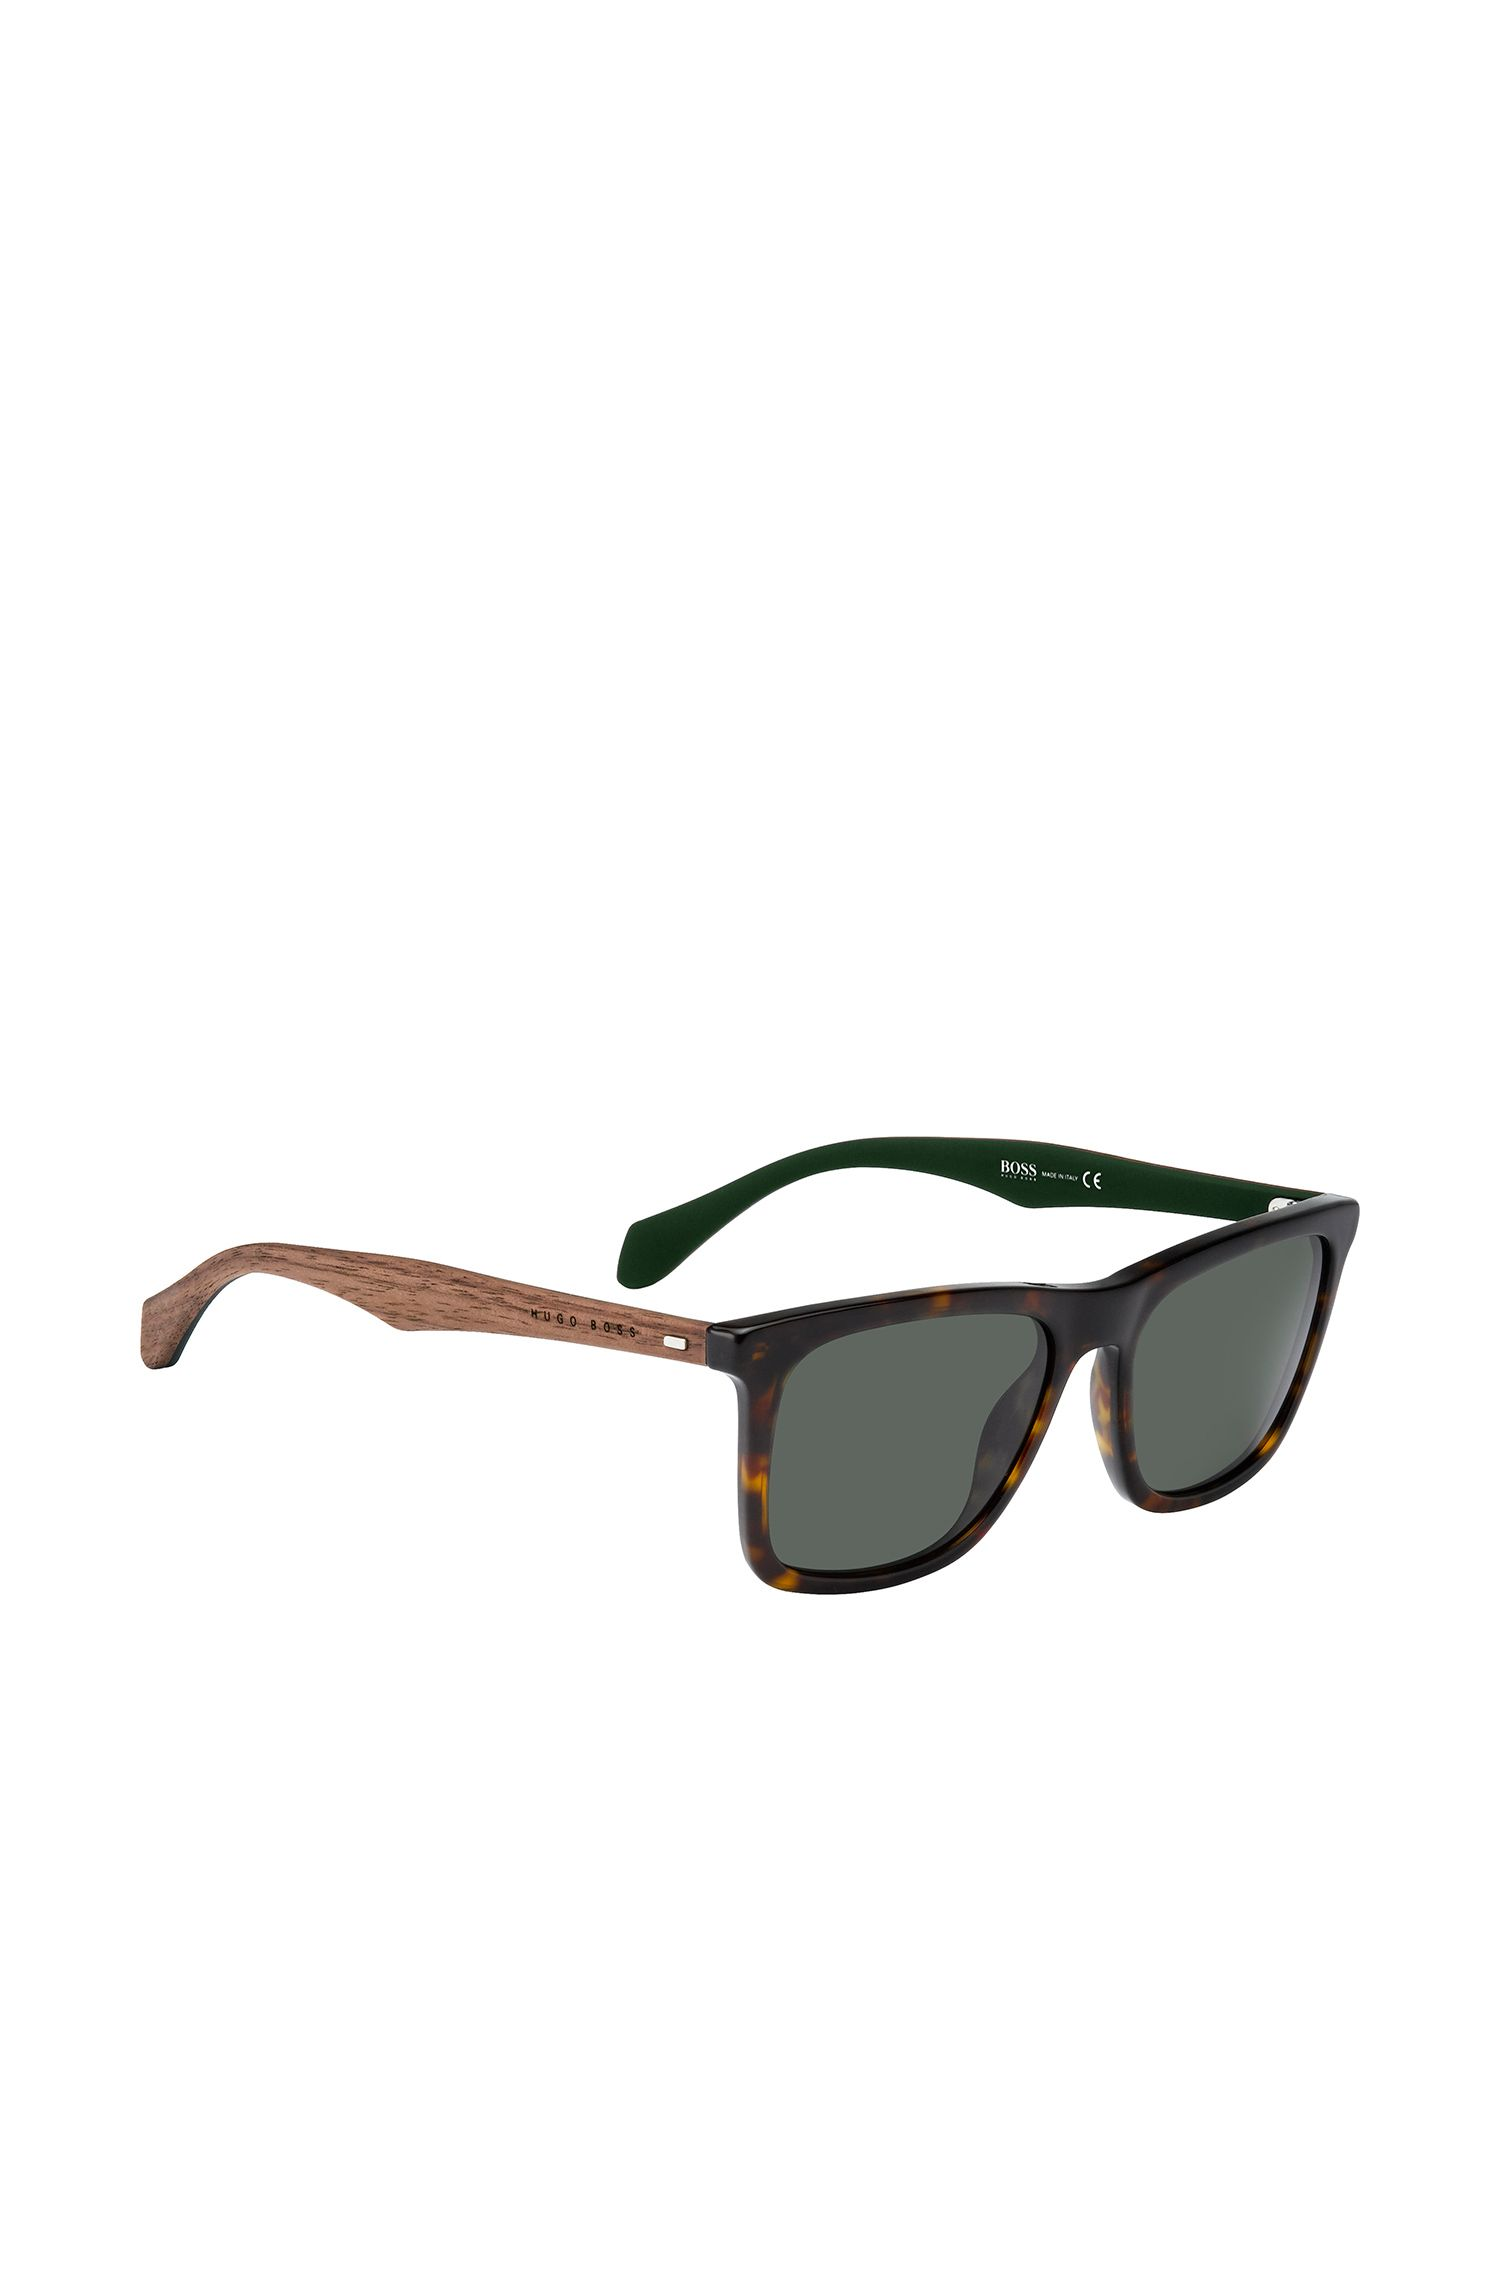 'BOSS 0776S' | Gray Green Lens Walnut Sunglasses